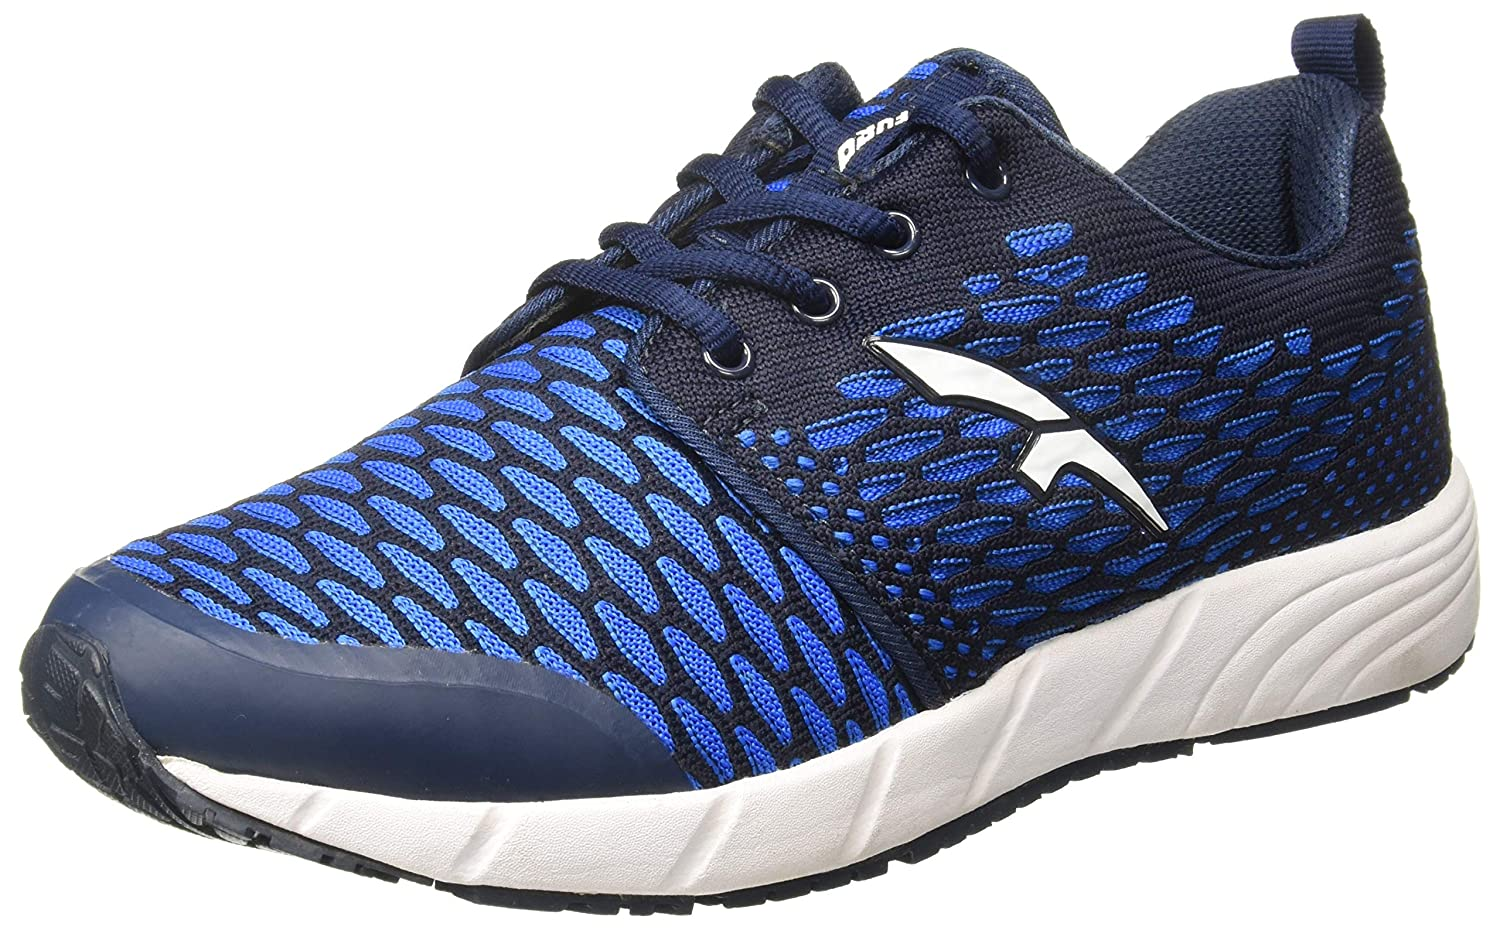 Red Chief Men's W3001 Running Shoes